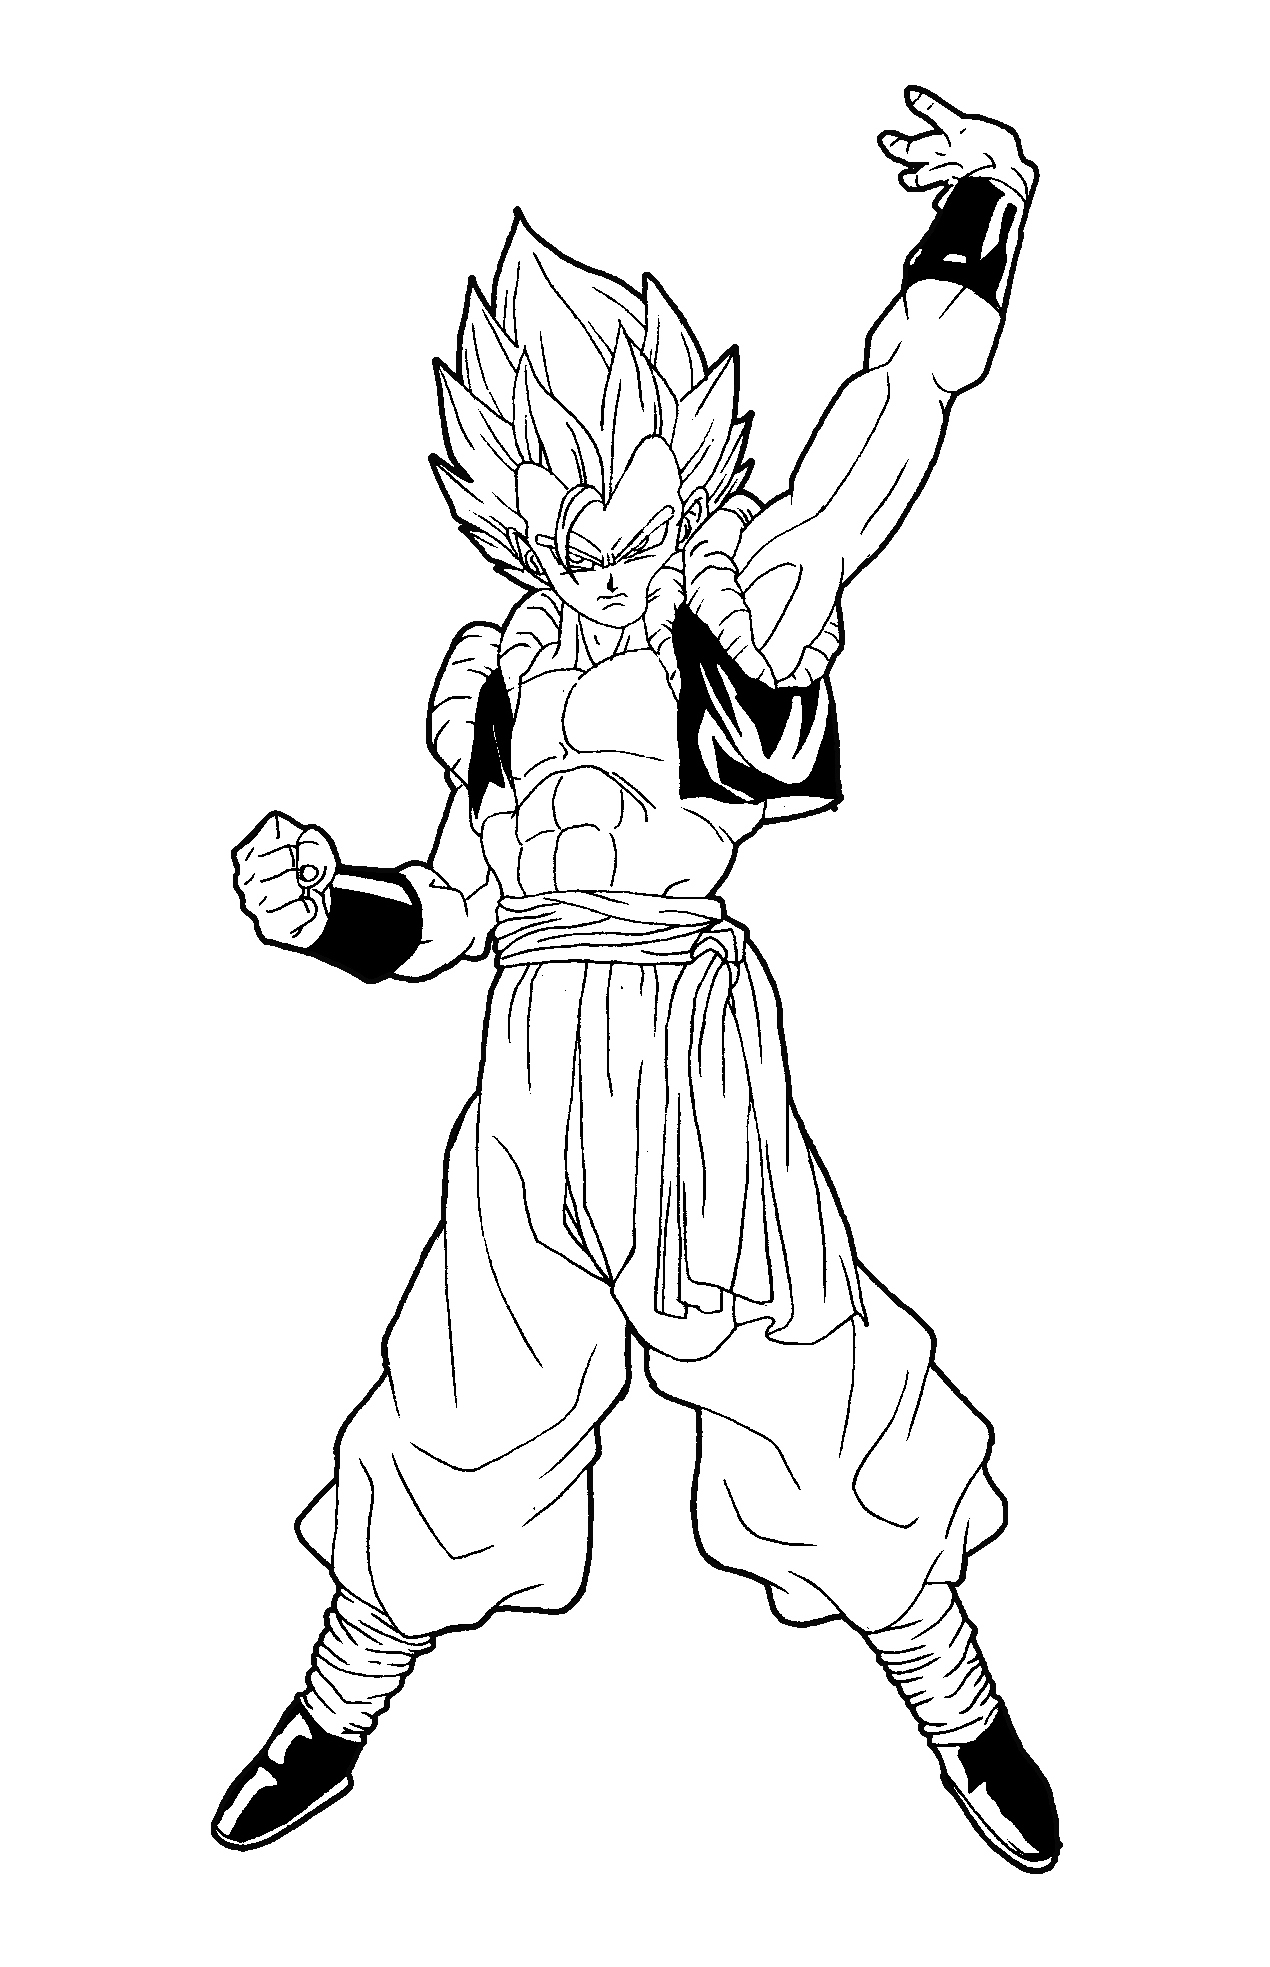 Belle dragon ball z coloriage facile - Dessin de dragon ball super ...